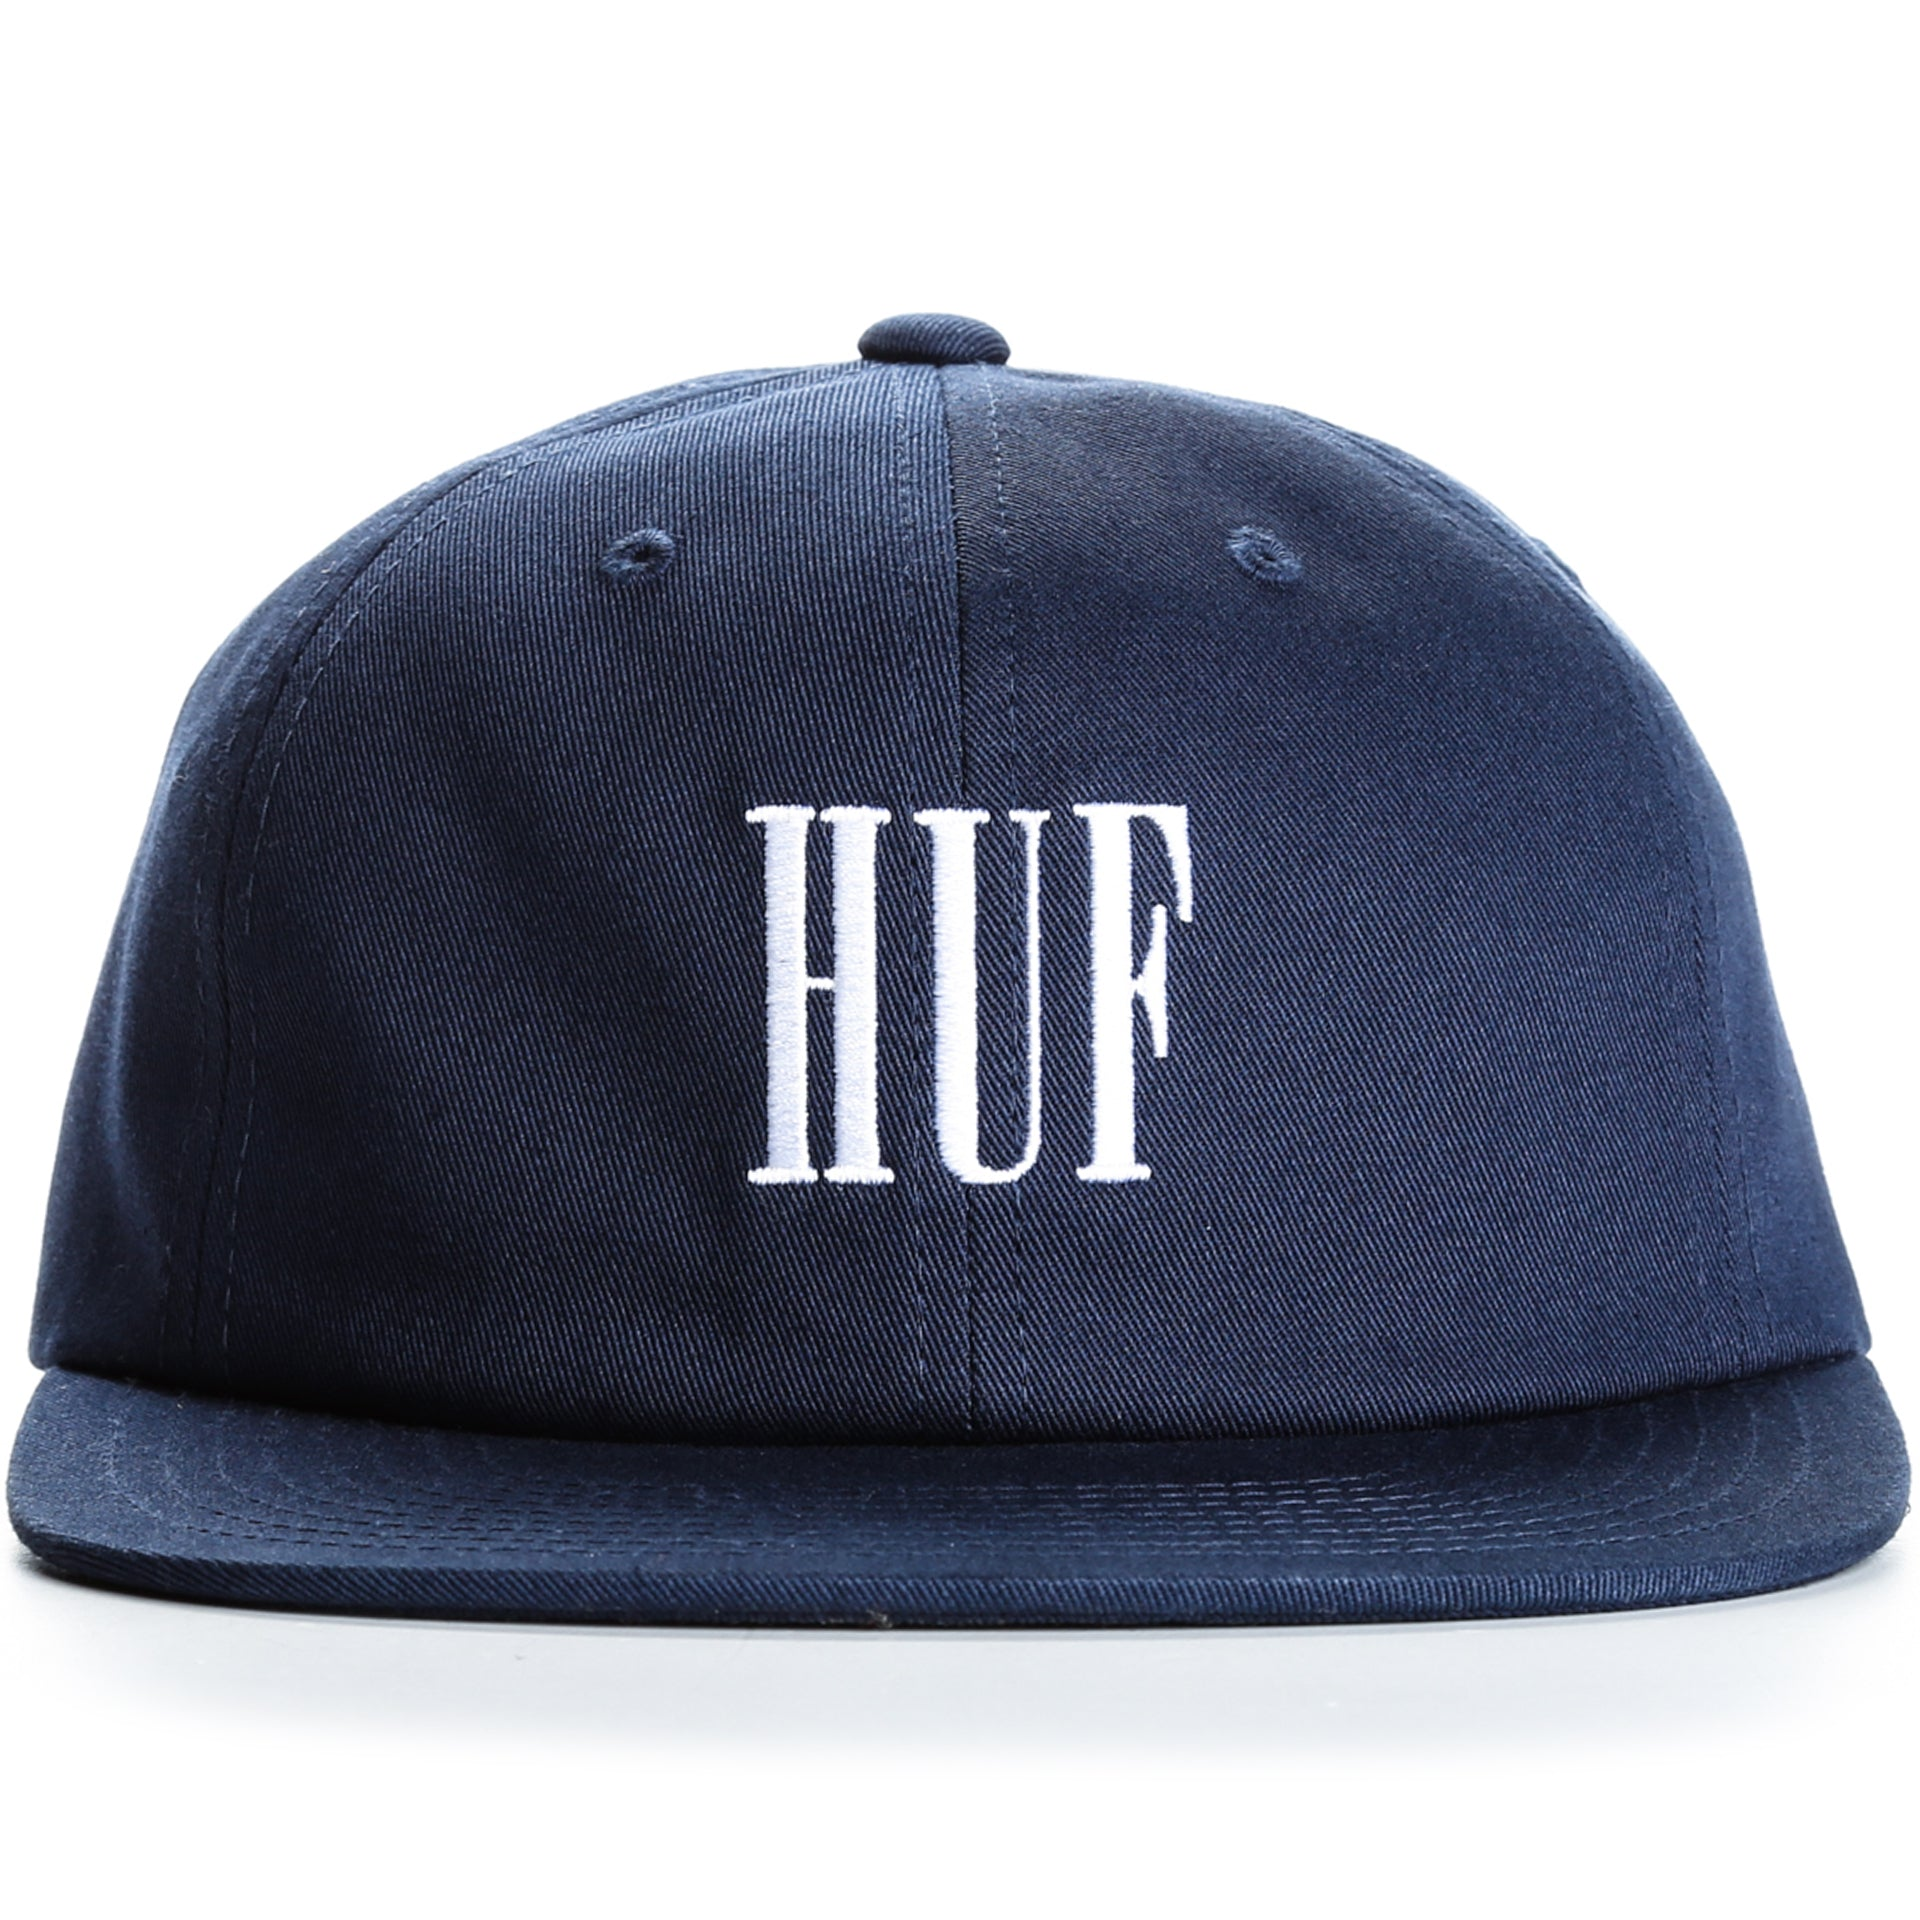 27fbd9e154f4c HUF Marka 6 Panel Hat - Navy - New Star